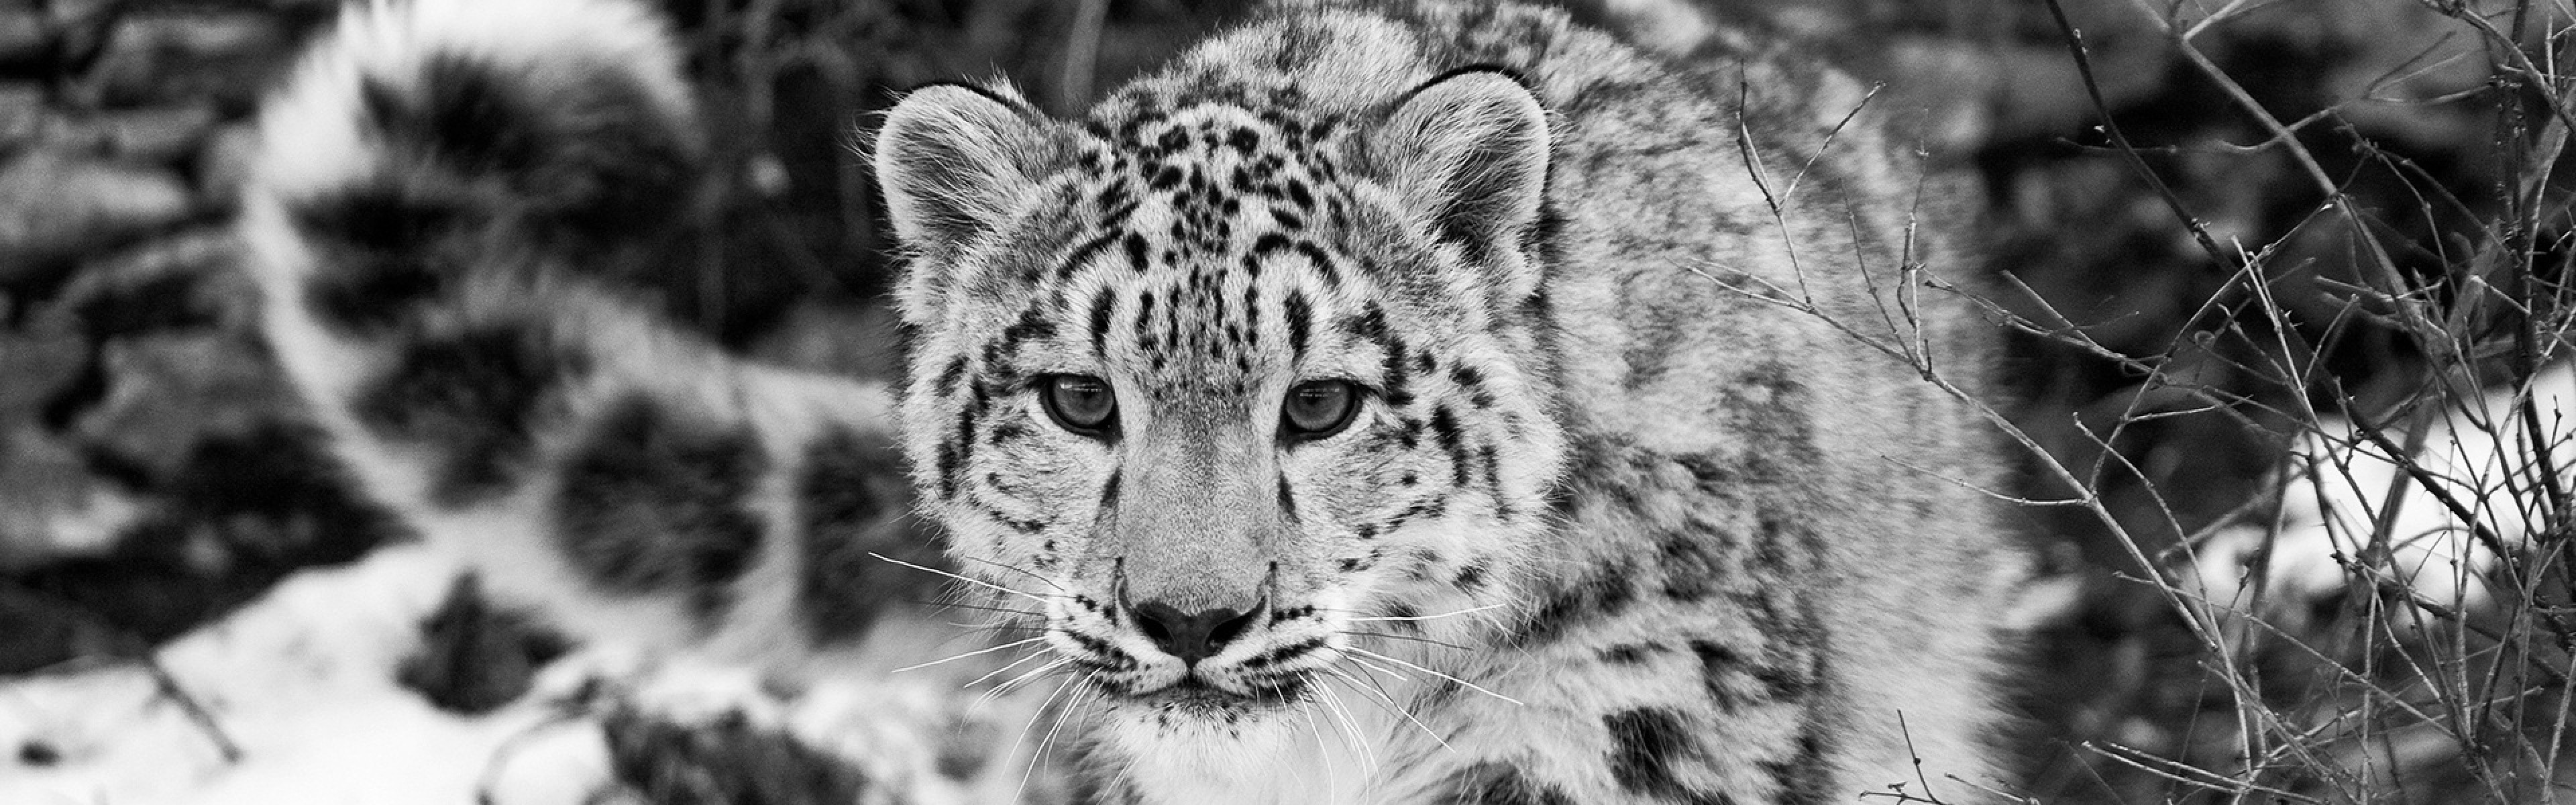 Wallpaper snow leopard, snow, hunting, attention, black and white